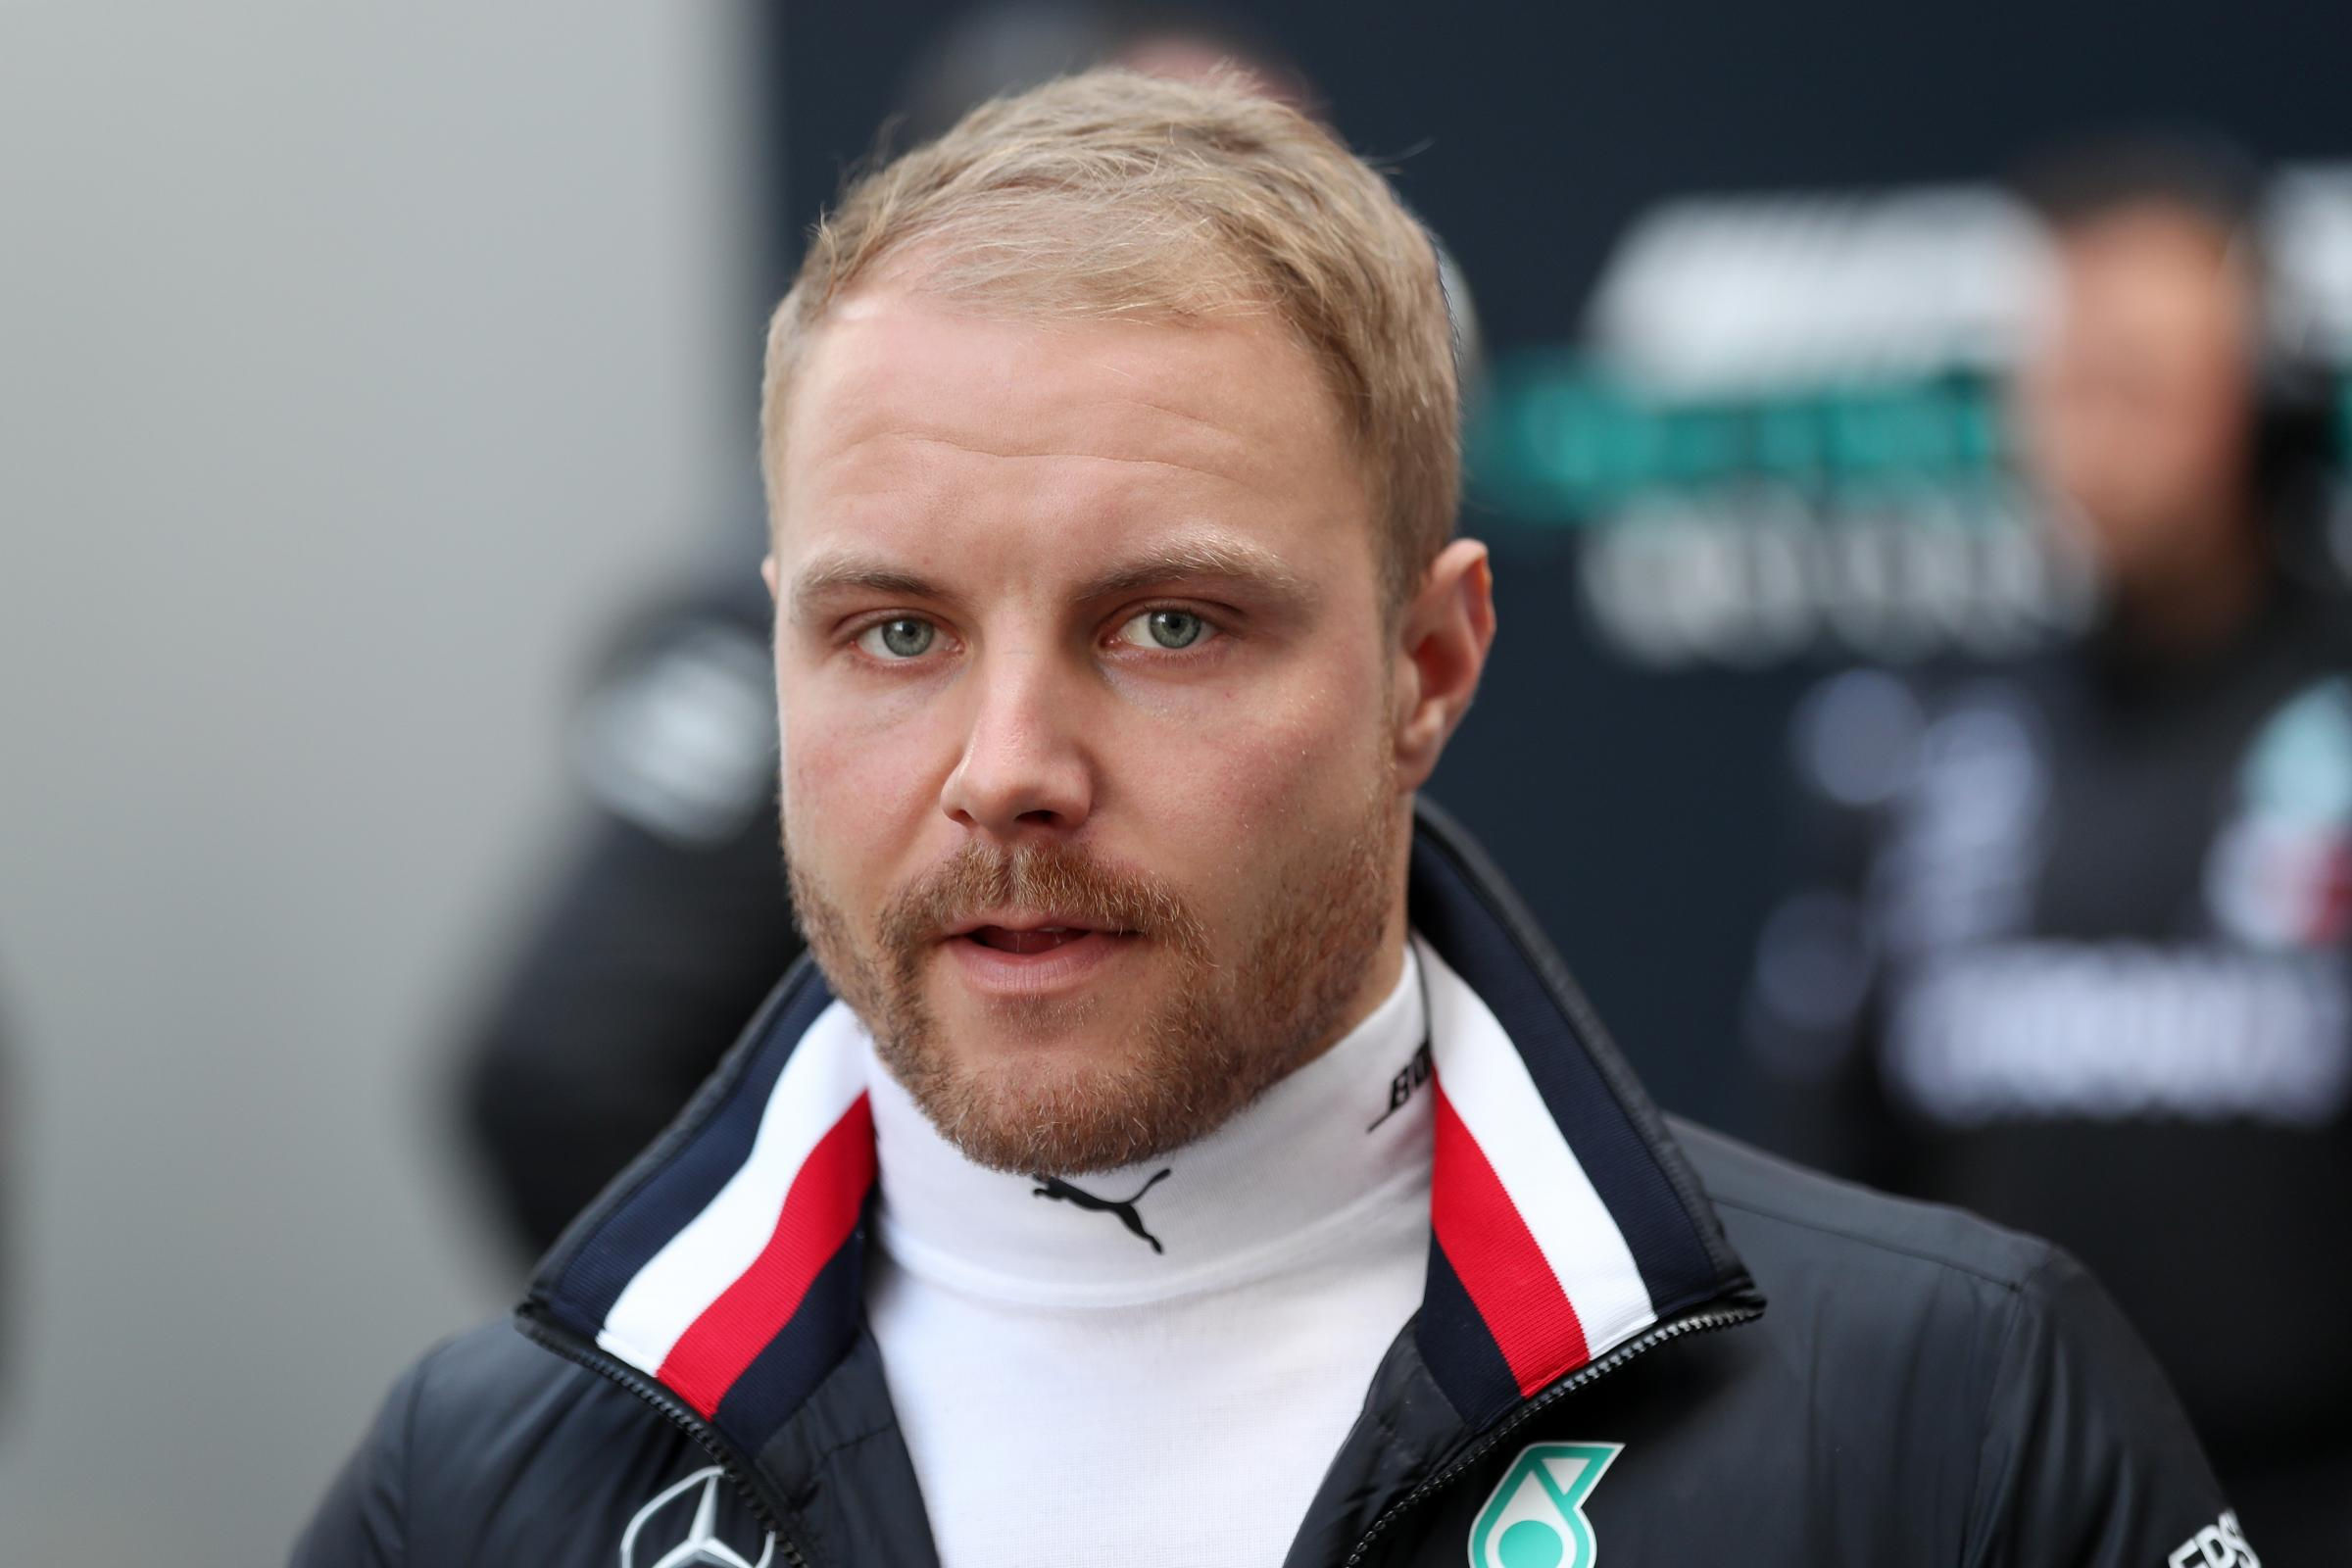 Valtteri Bottas believes Ferrari are ahead of Mercedes following the first few days of pre-season testing